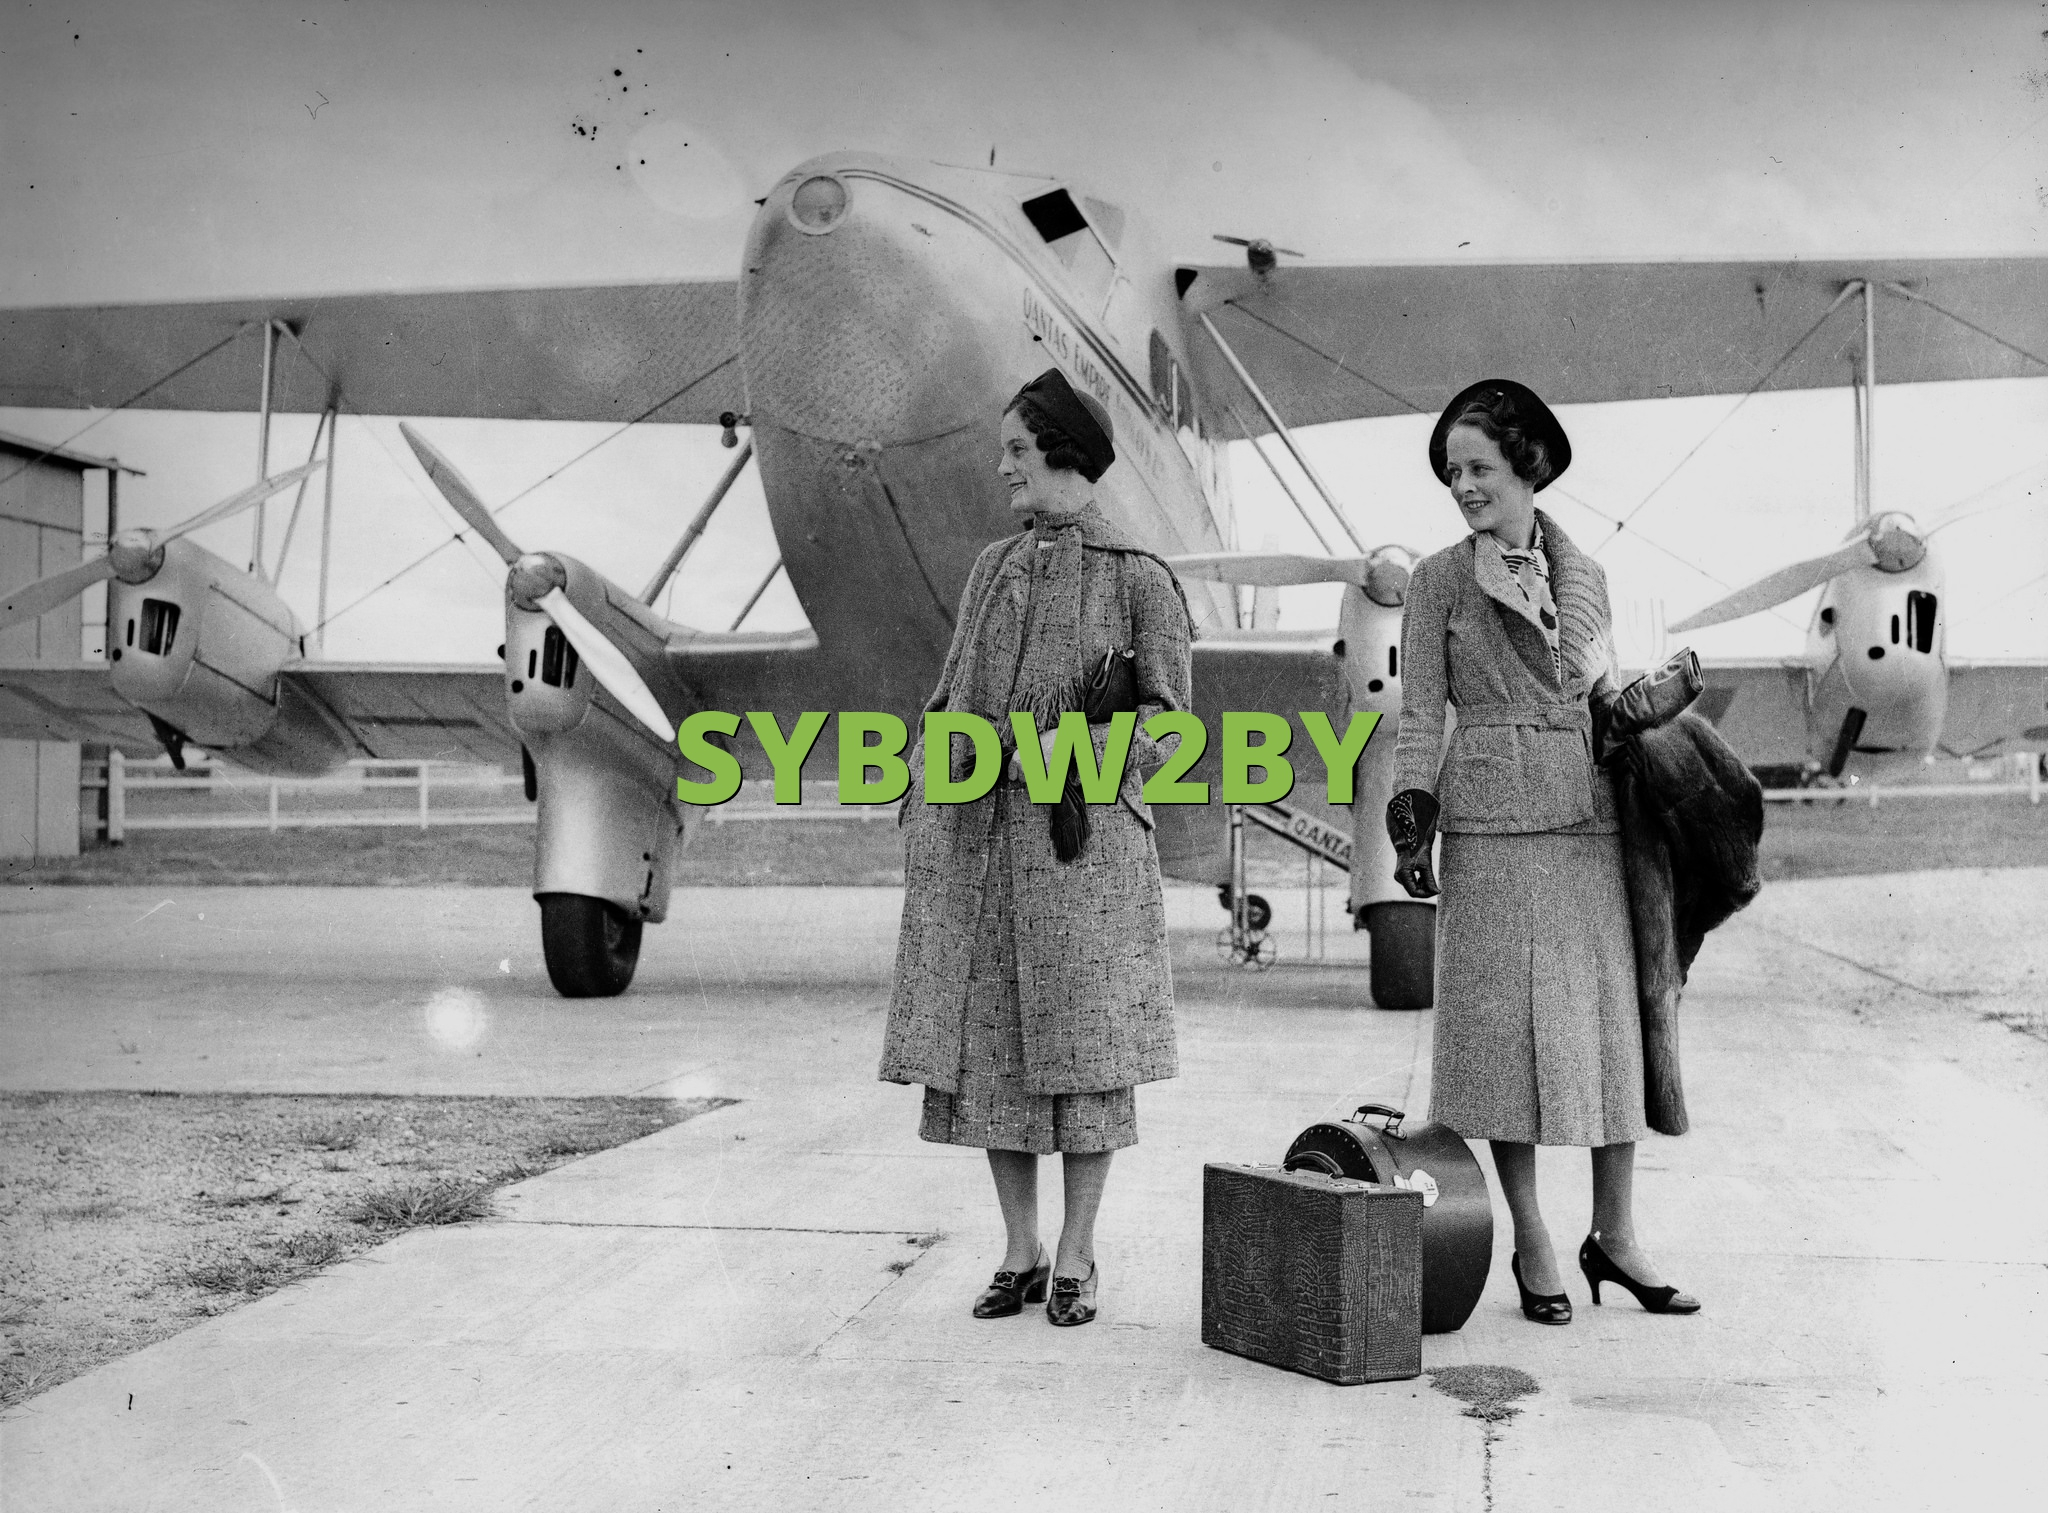 SYBDW2BY